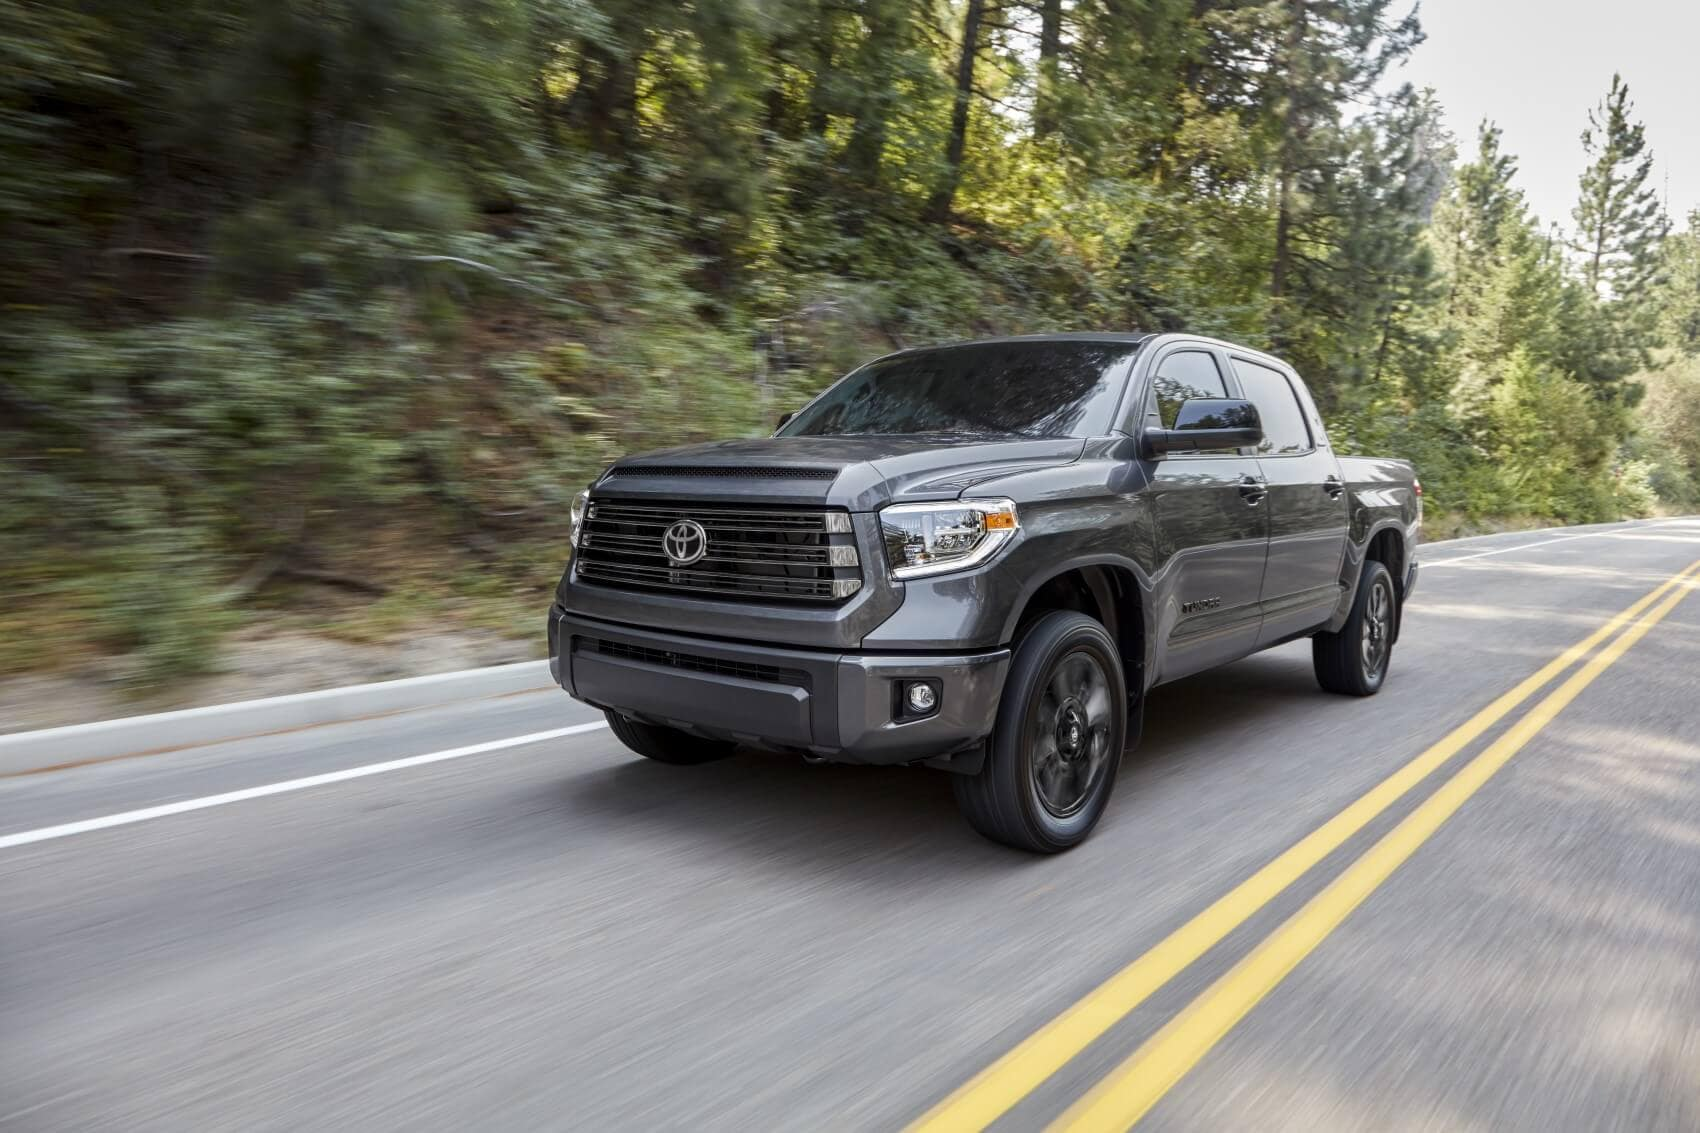 Toyota Tundra Safety Features